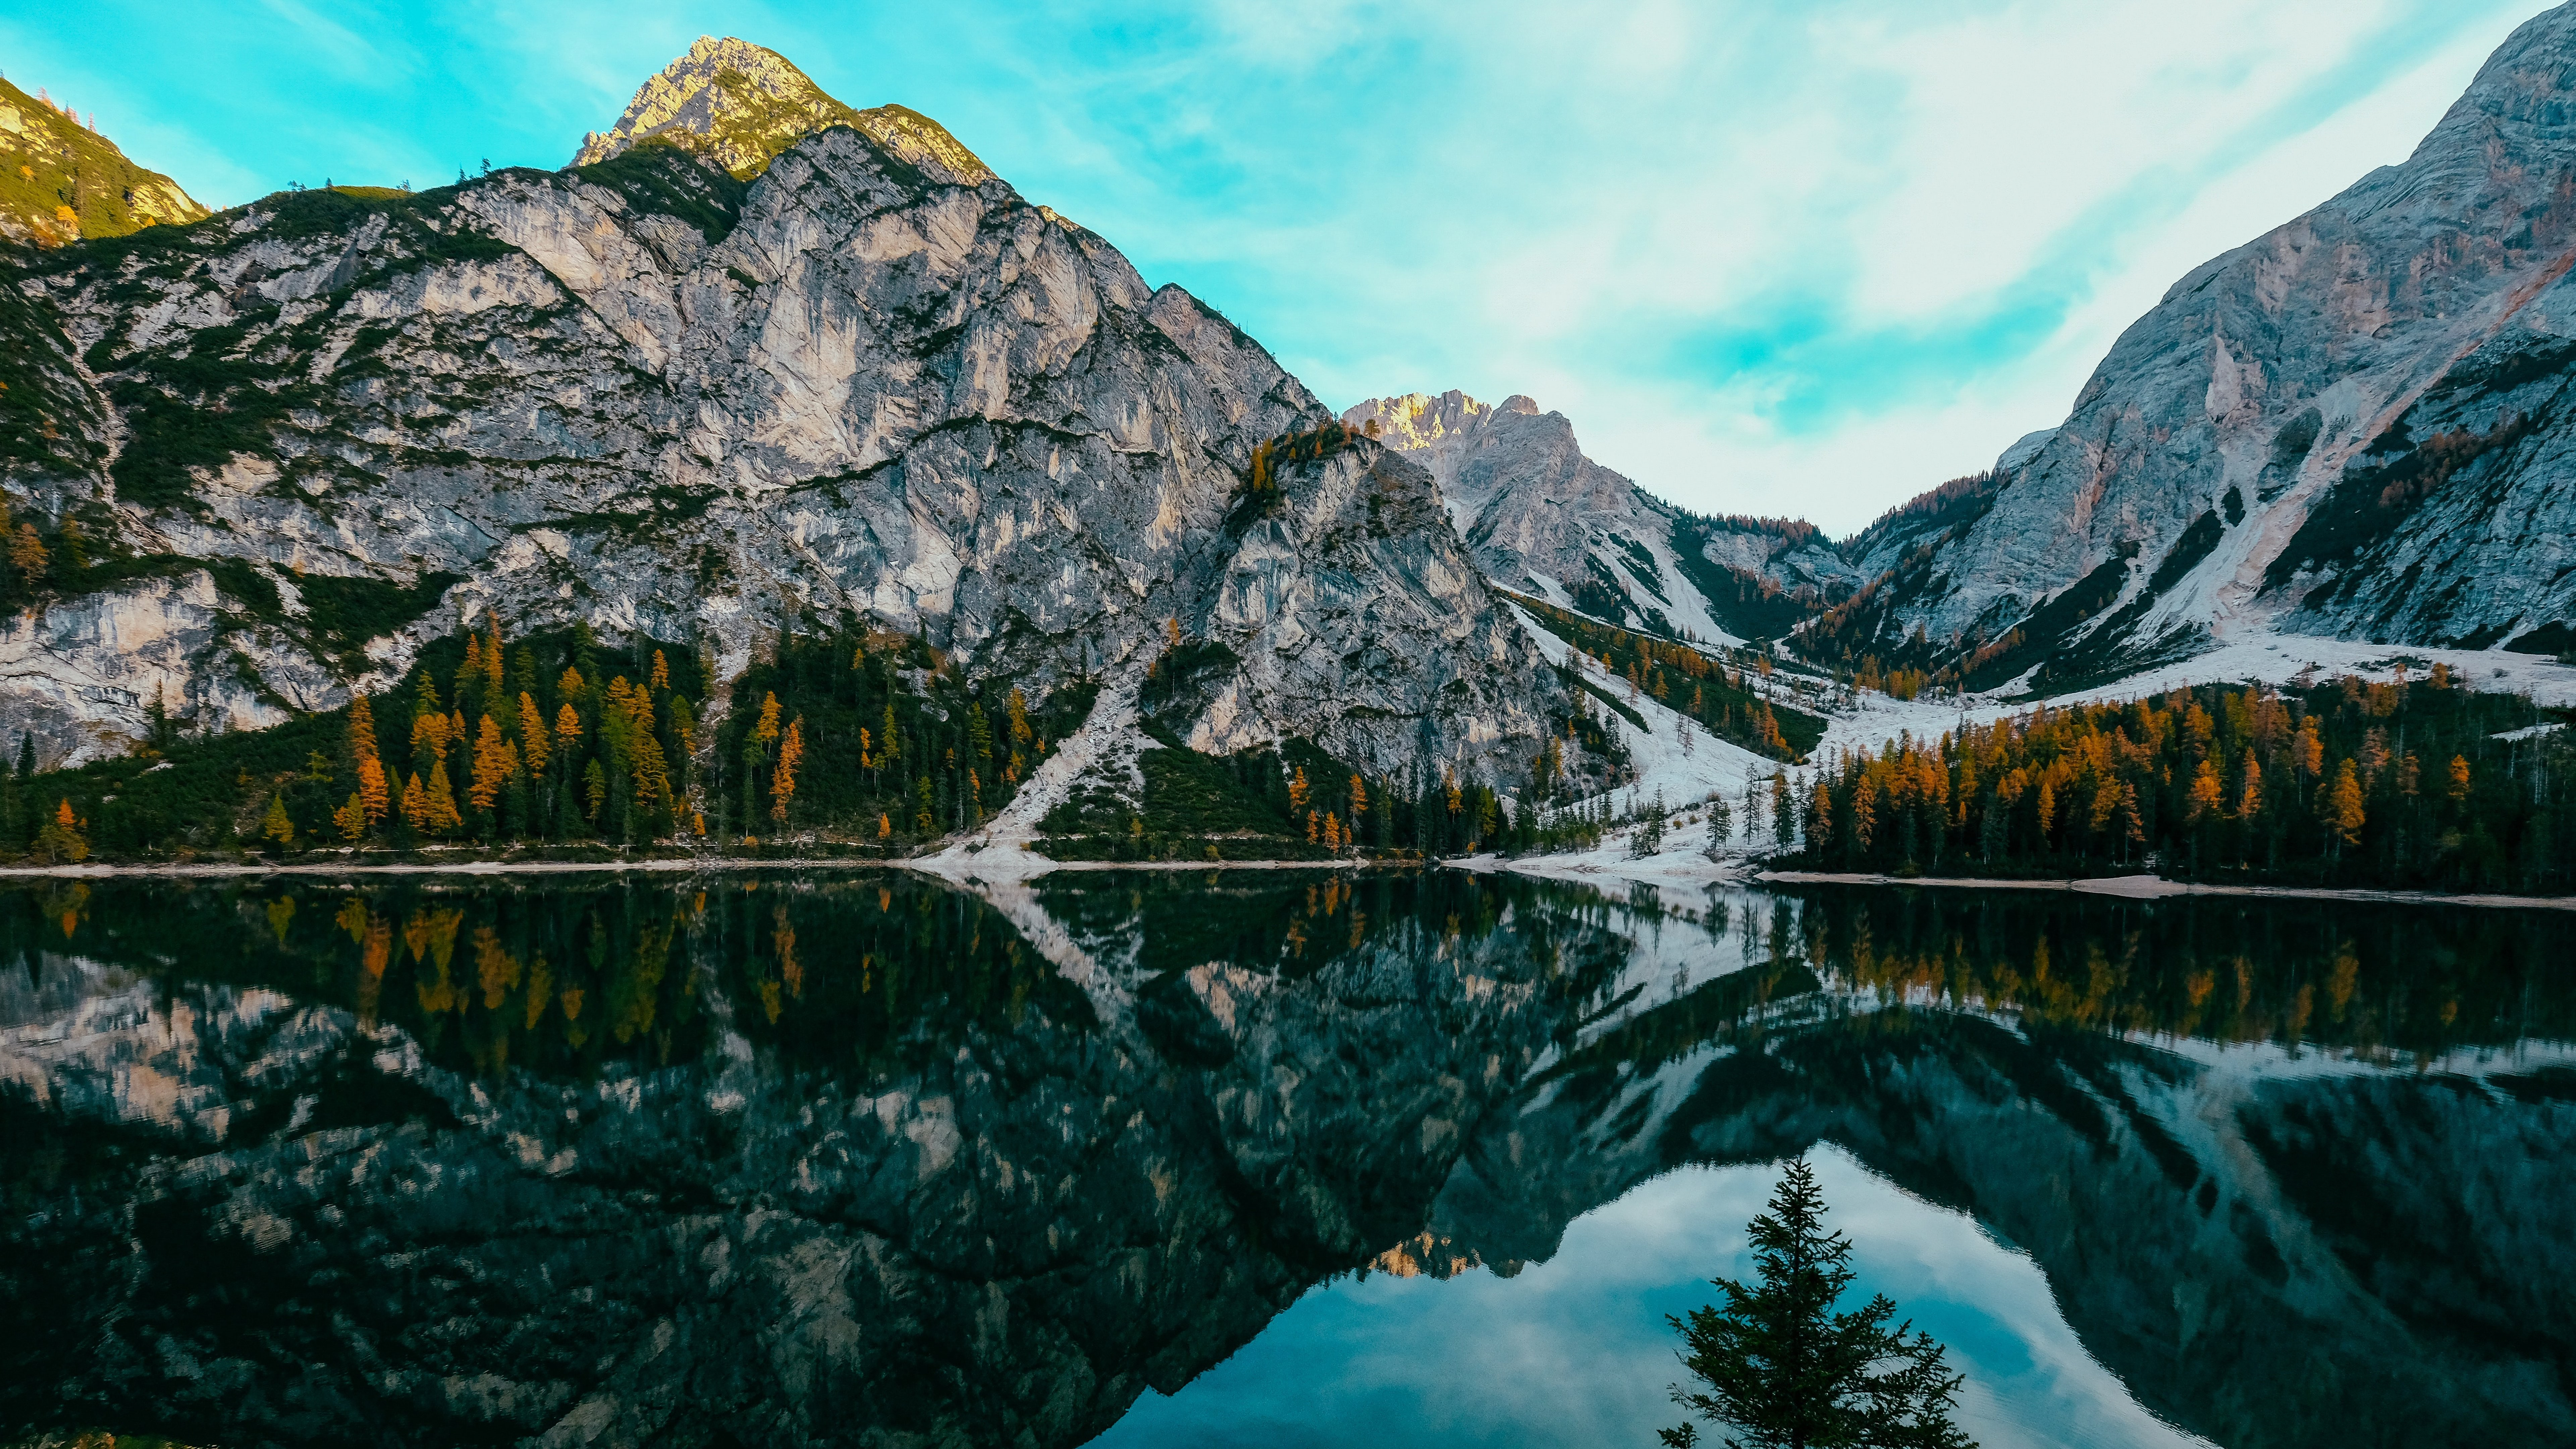 Wallpaper Montain reflected in lake